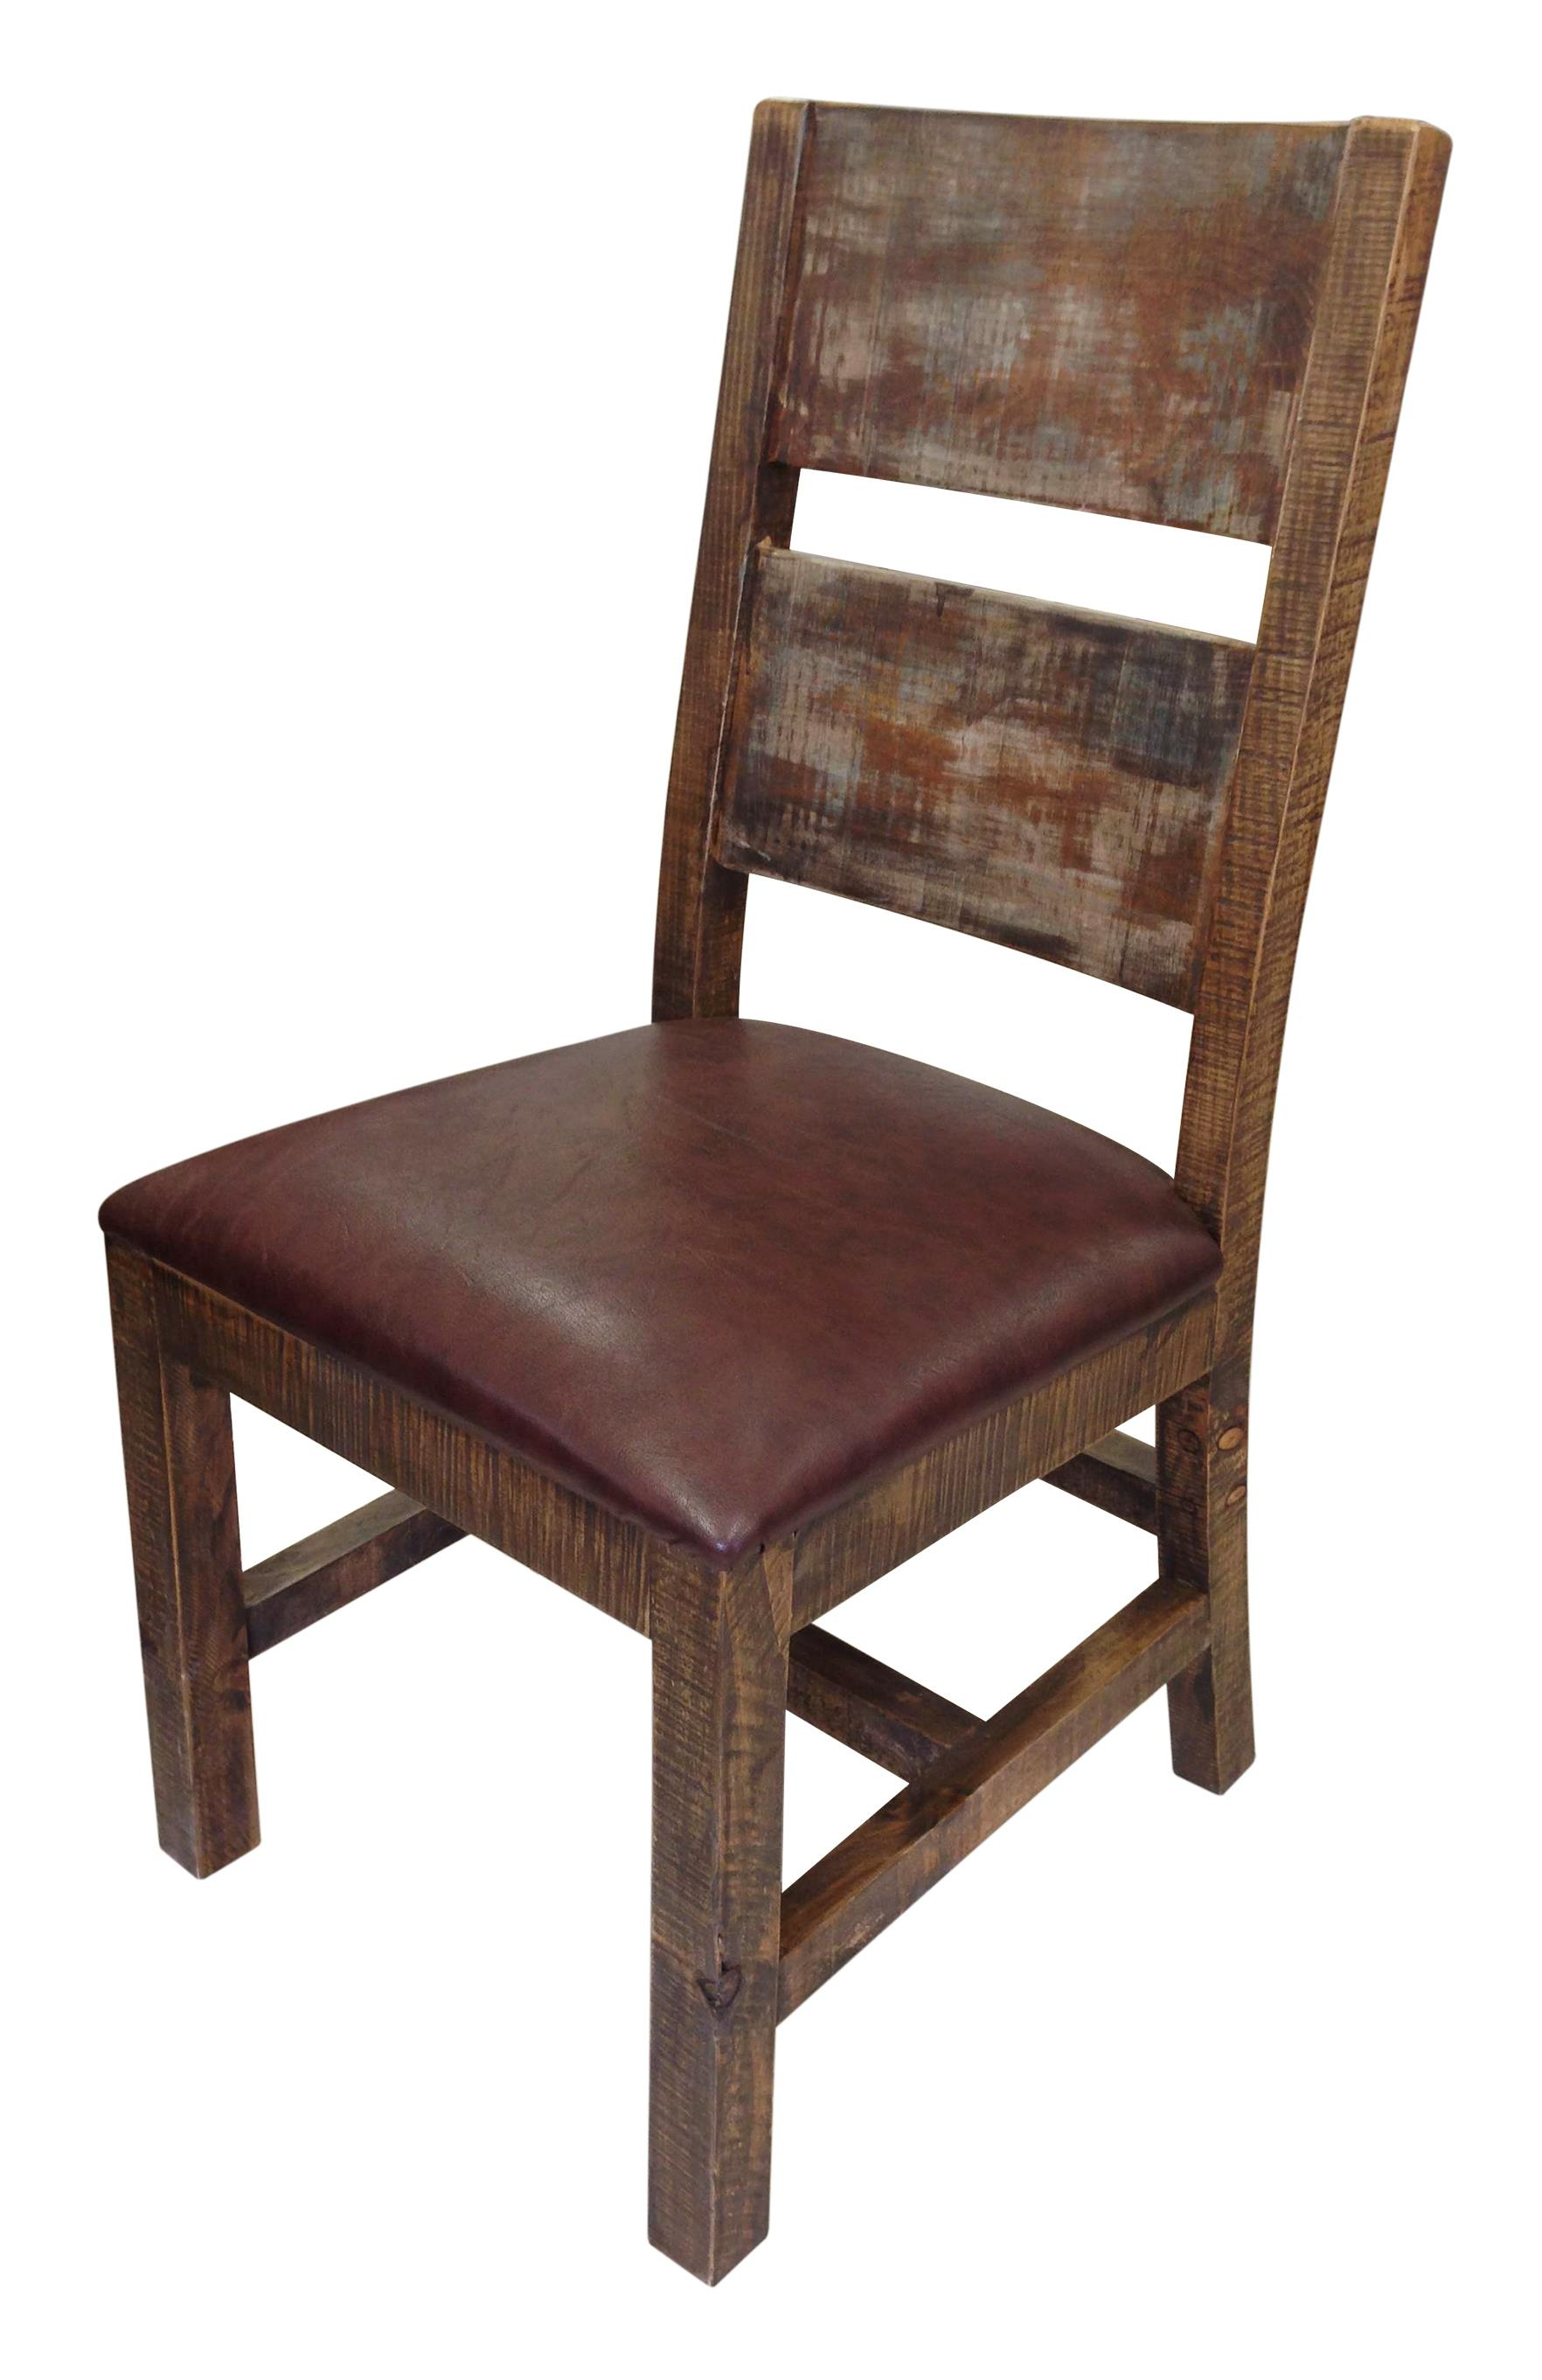 solid wood chairs 3 in one high chair international furniture direct 900 antique ifd967chair mc